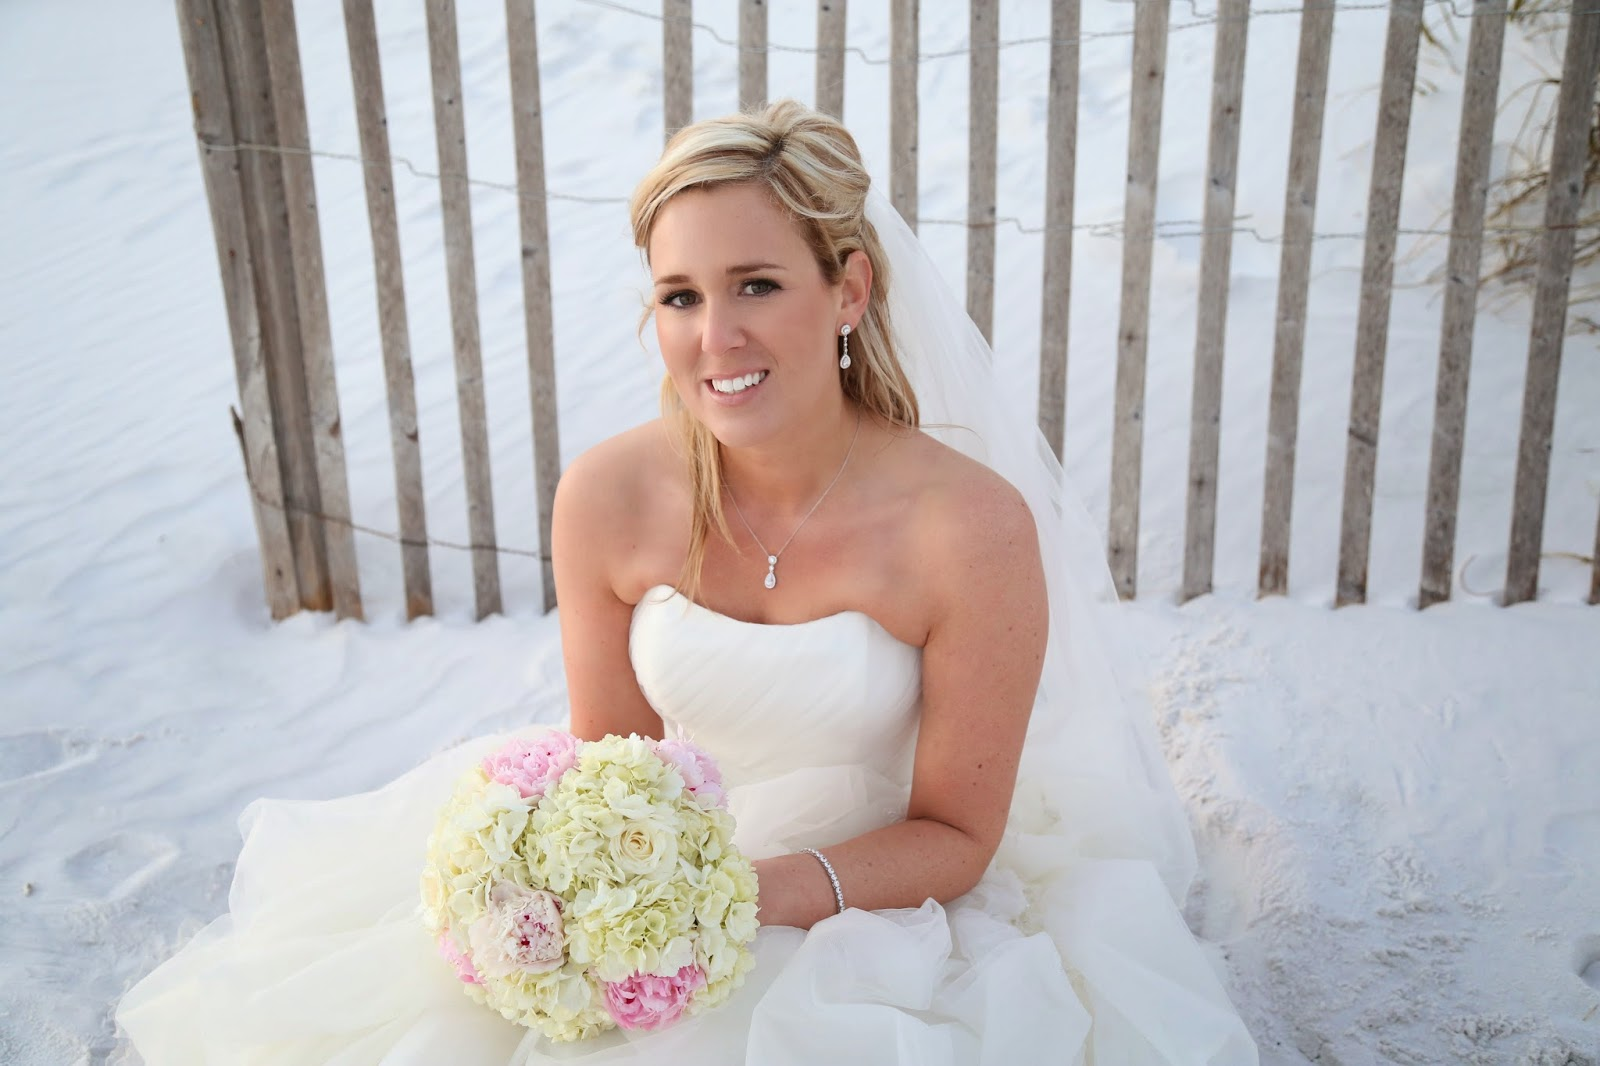 Bridal Bouquet of Pink peonies, hydrangea and white roses, Destin Beach Wedding Packages